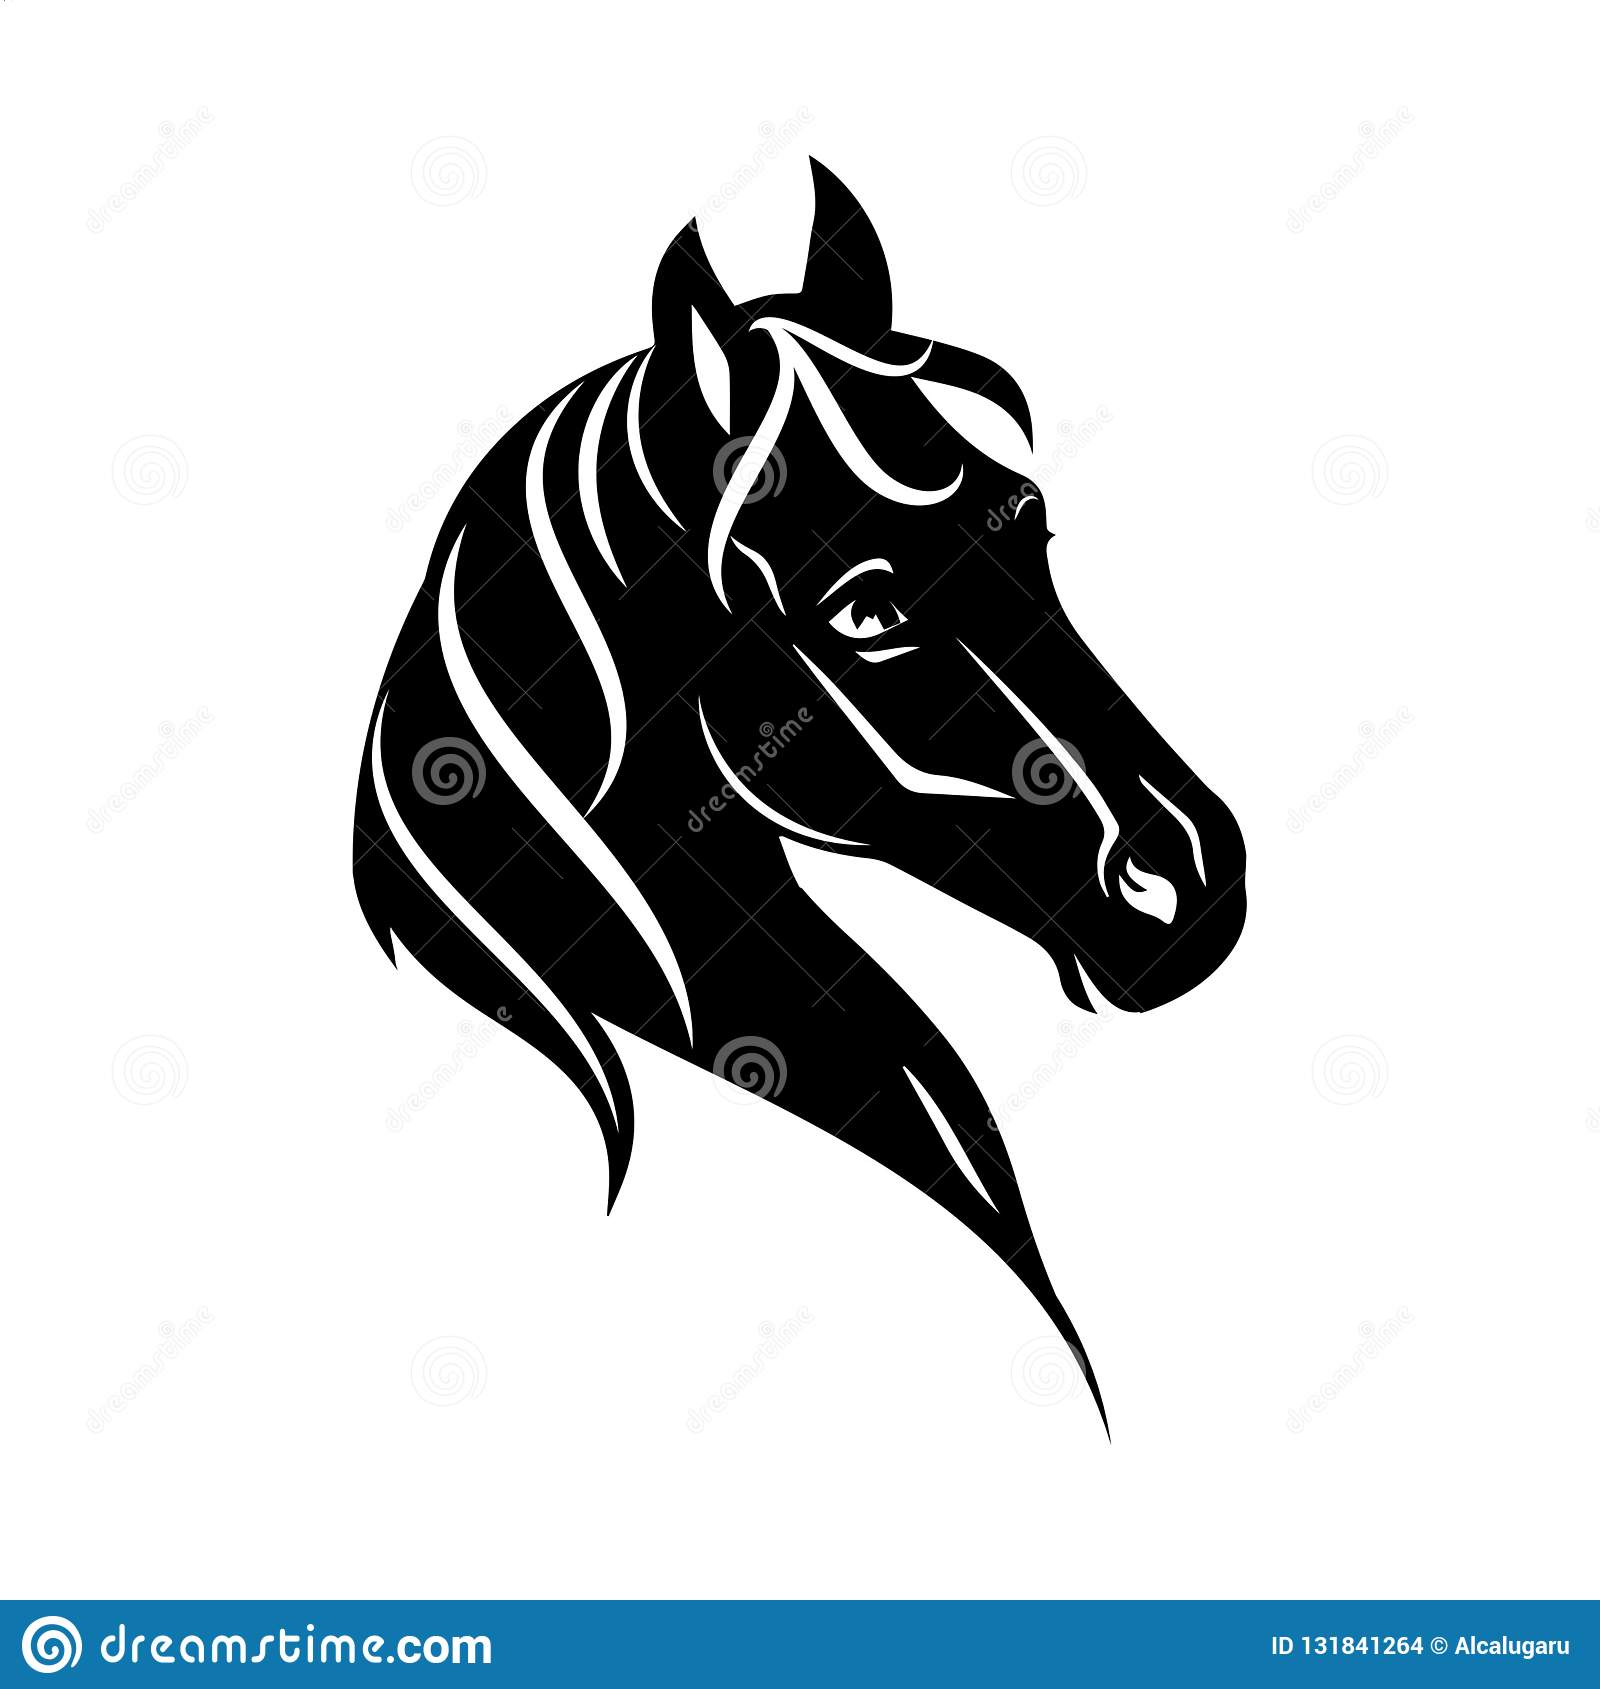 Horse Head Silhouette Stock Illustrations 10 096 Horse Head Silhouette Stock Illustrations Vectors Clipart Dreamstime